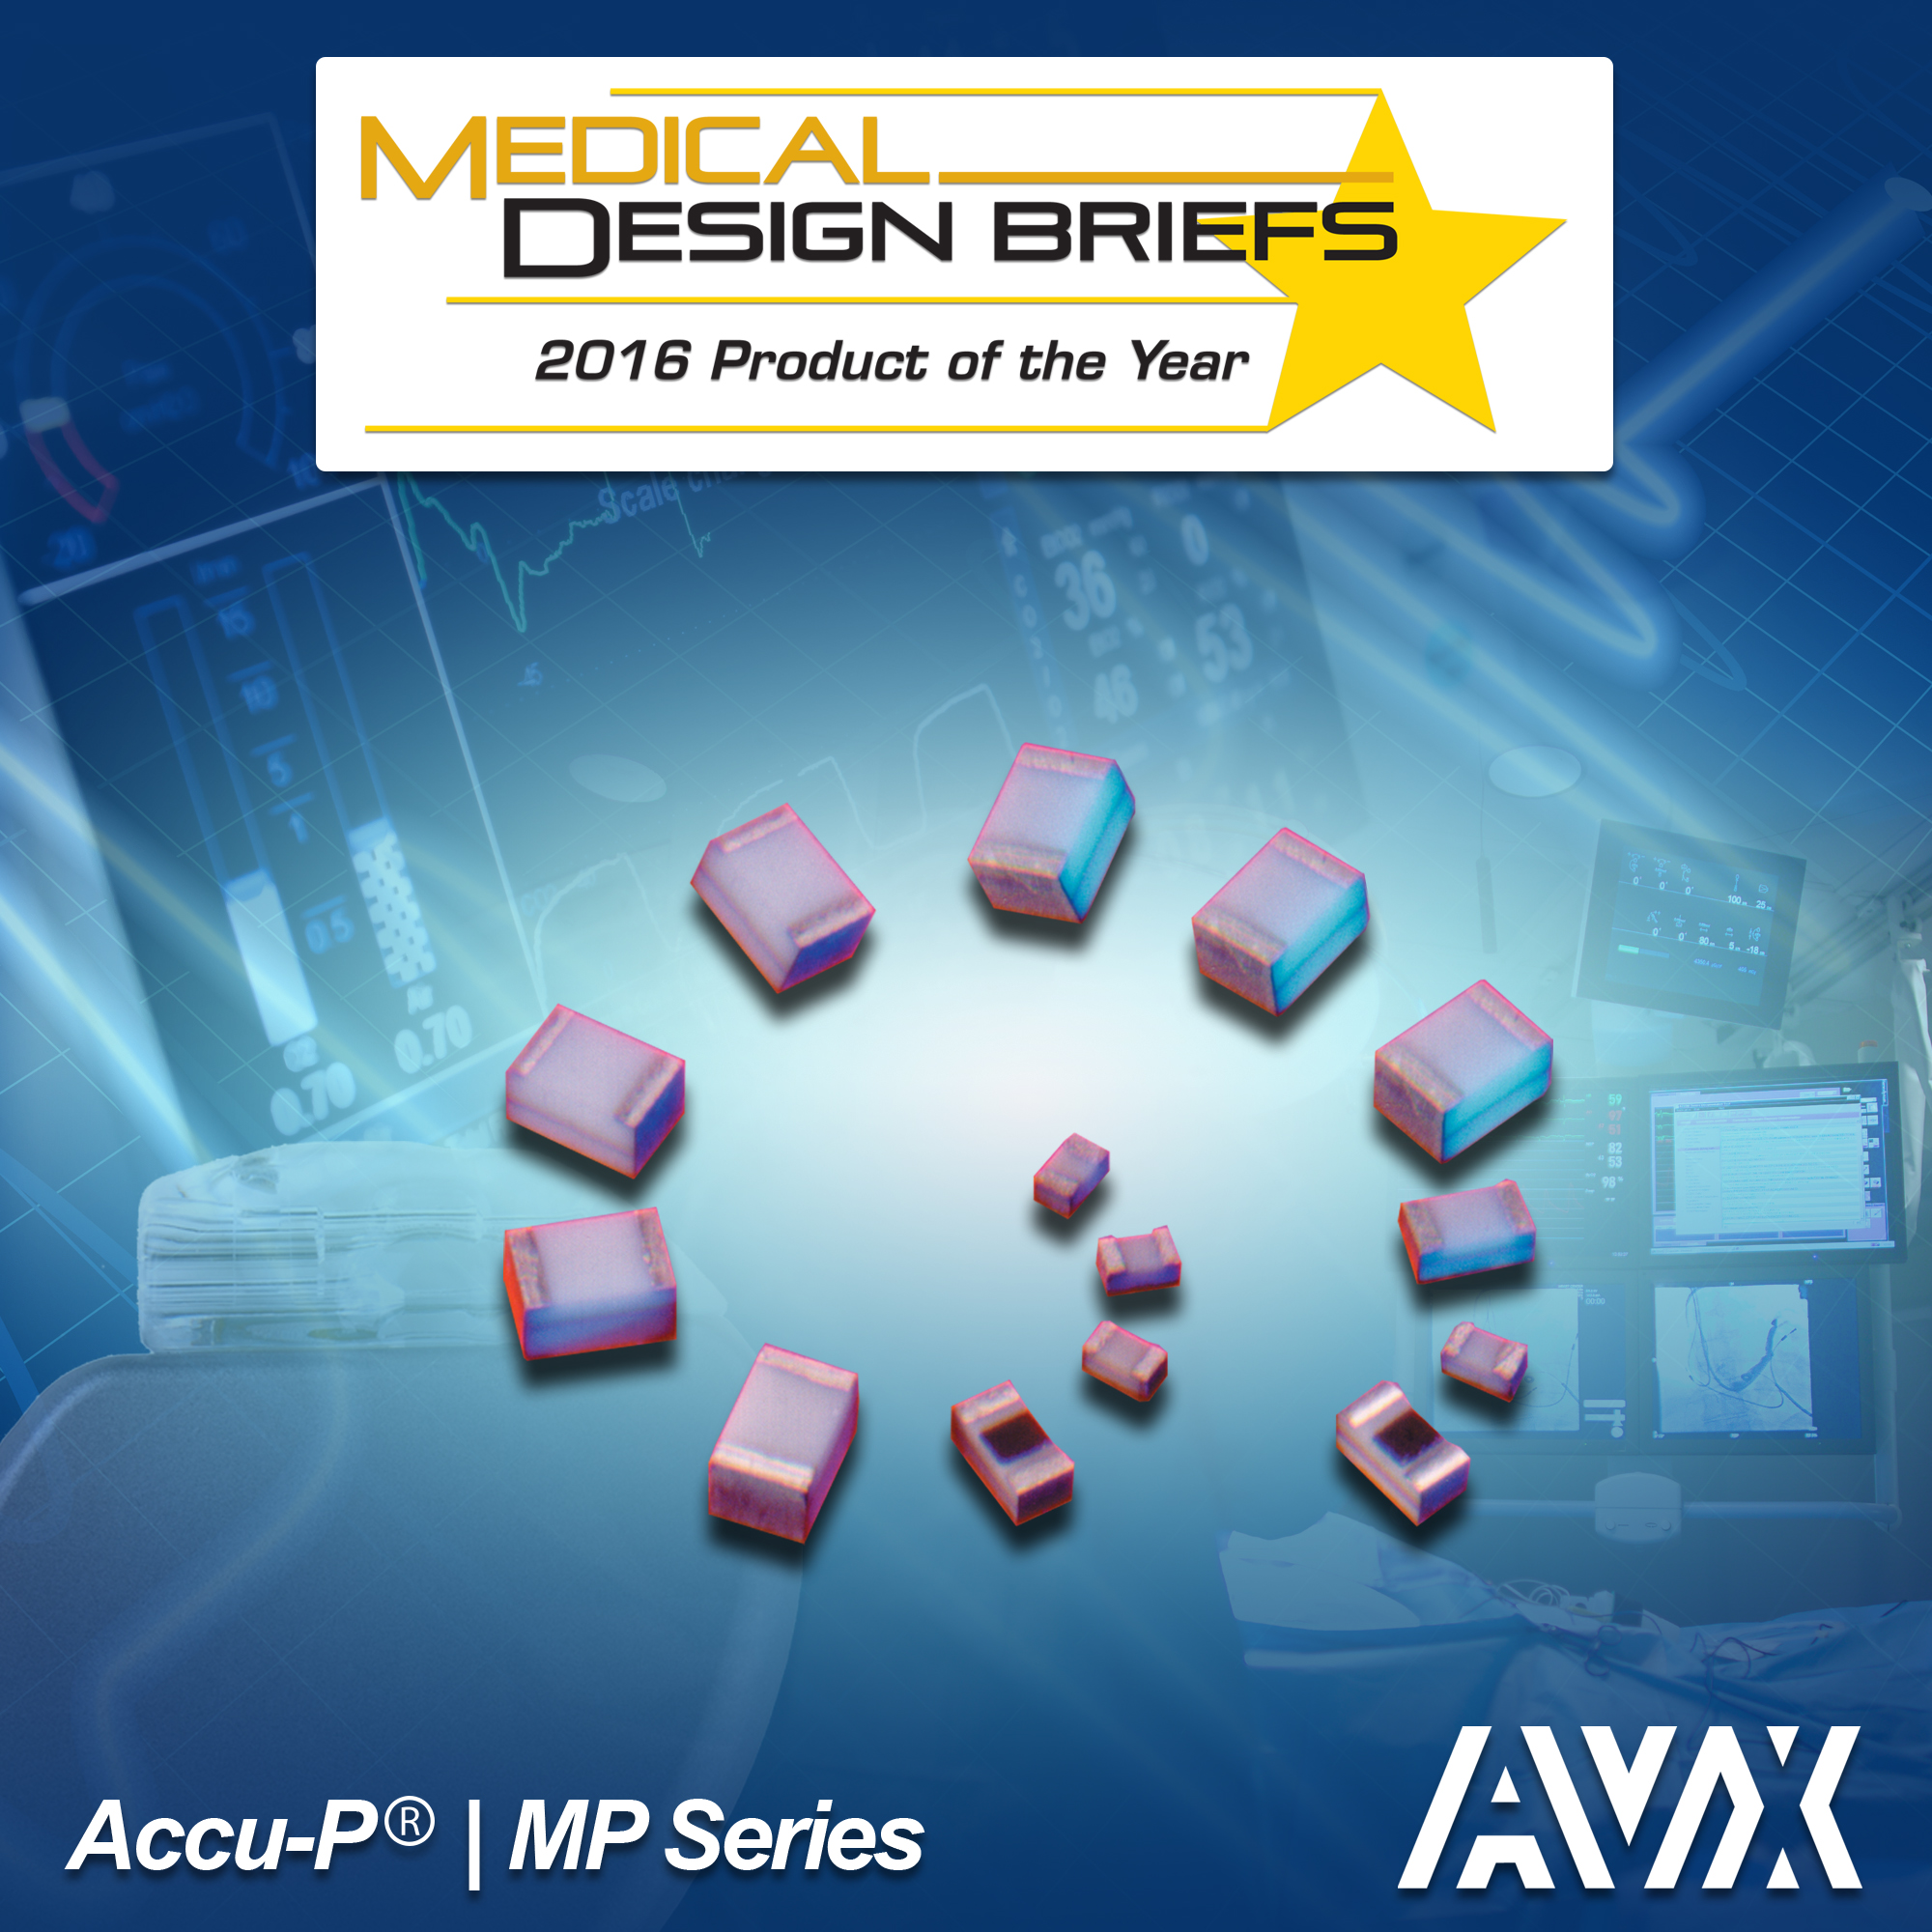 Avx Wins Medical Design Briefs 2016 Readers Choice